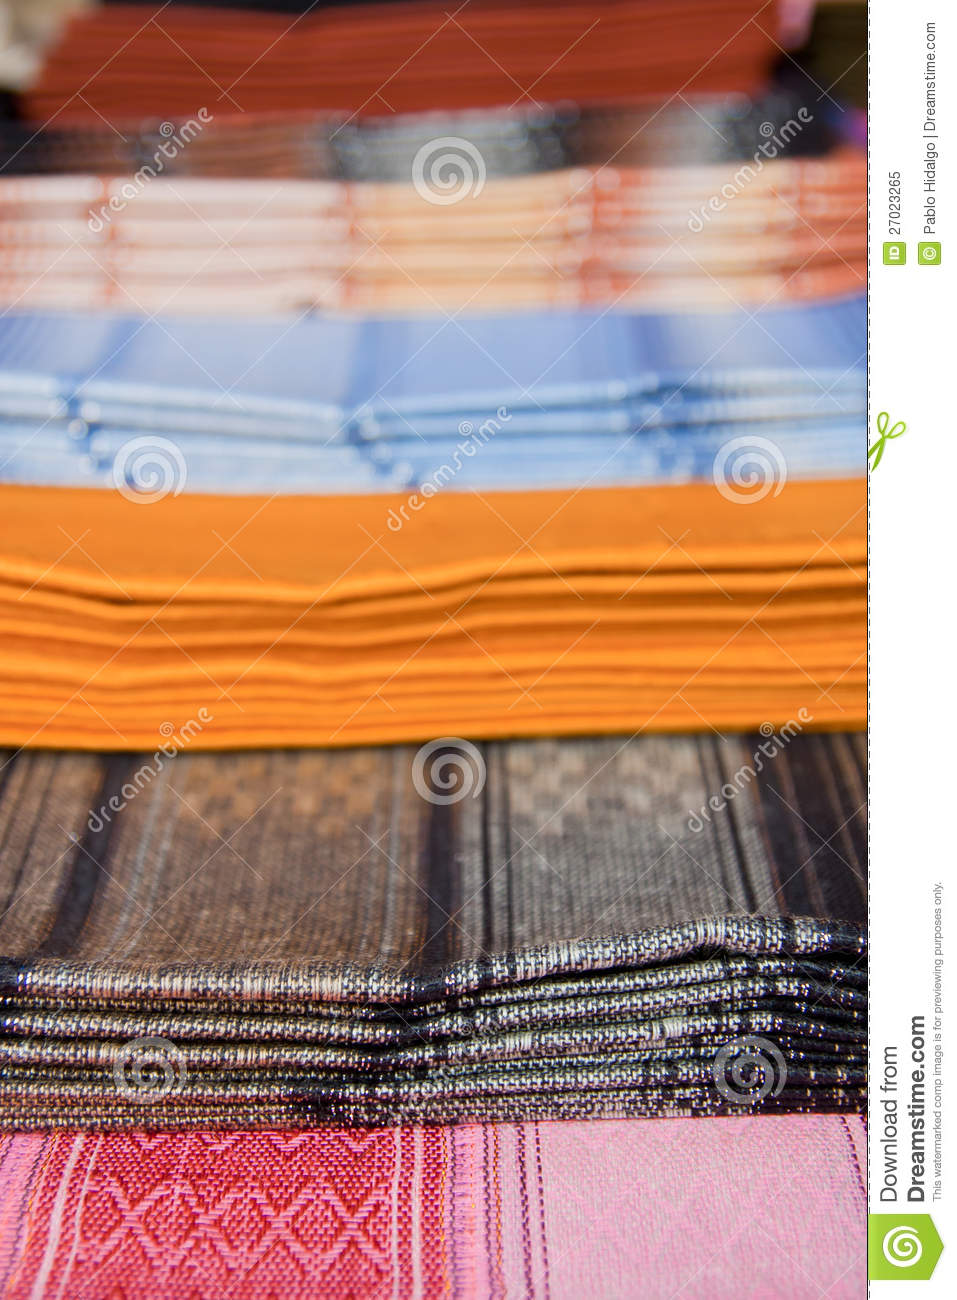 Ecuadorian Blankets For Sale In Otavalo Market Royalty Free Stock